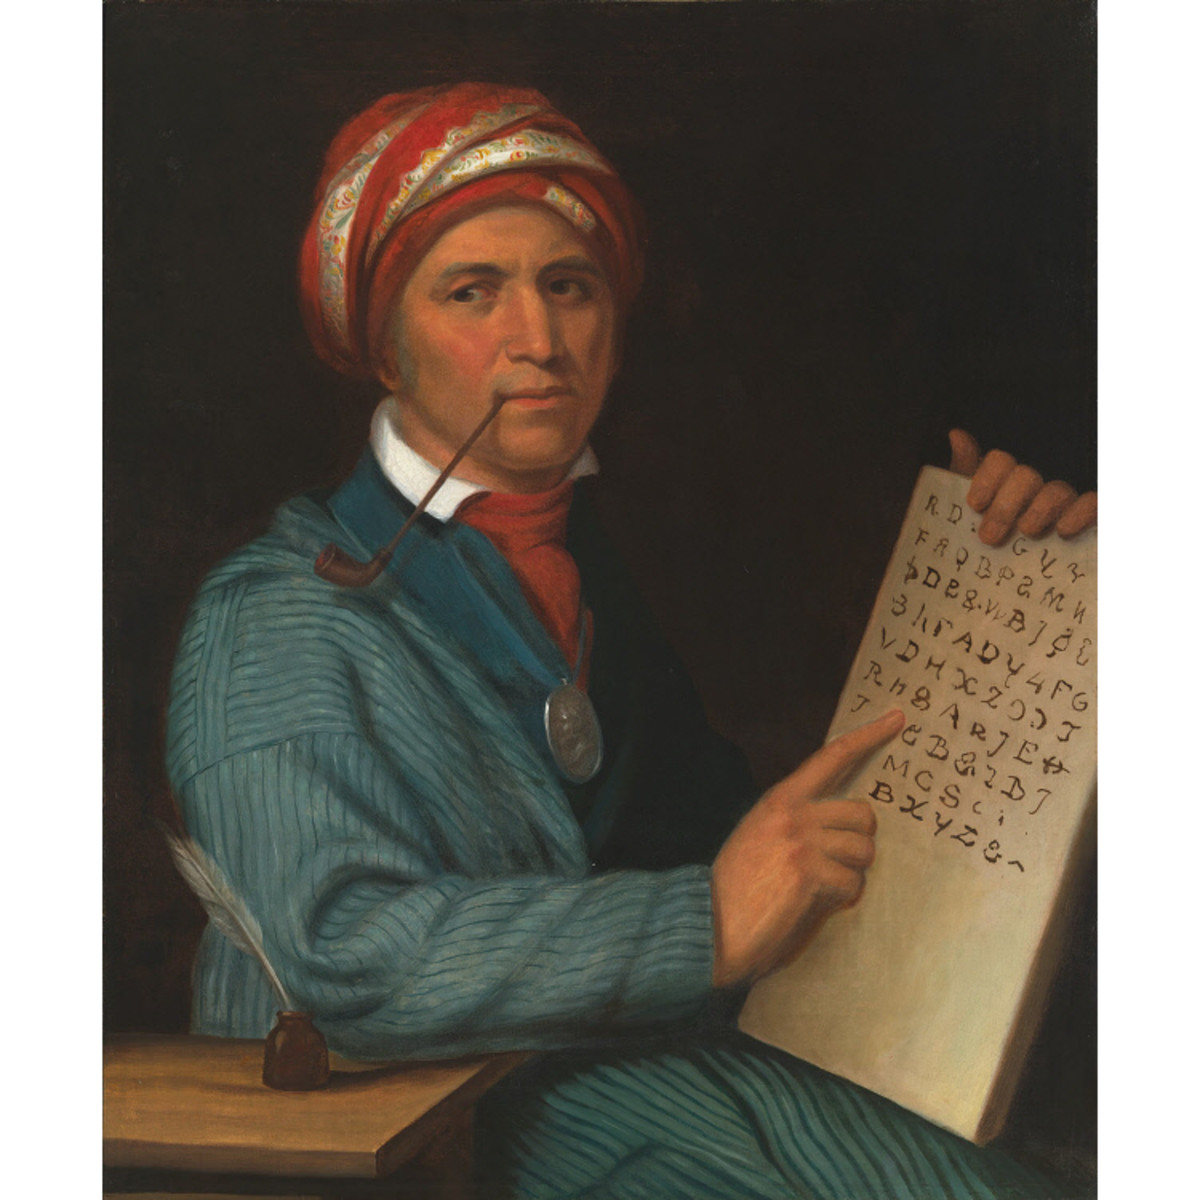 Painting of Sequoyah and his Cherokee script